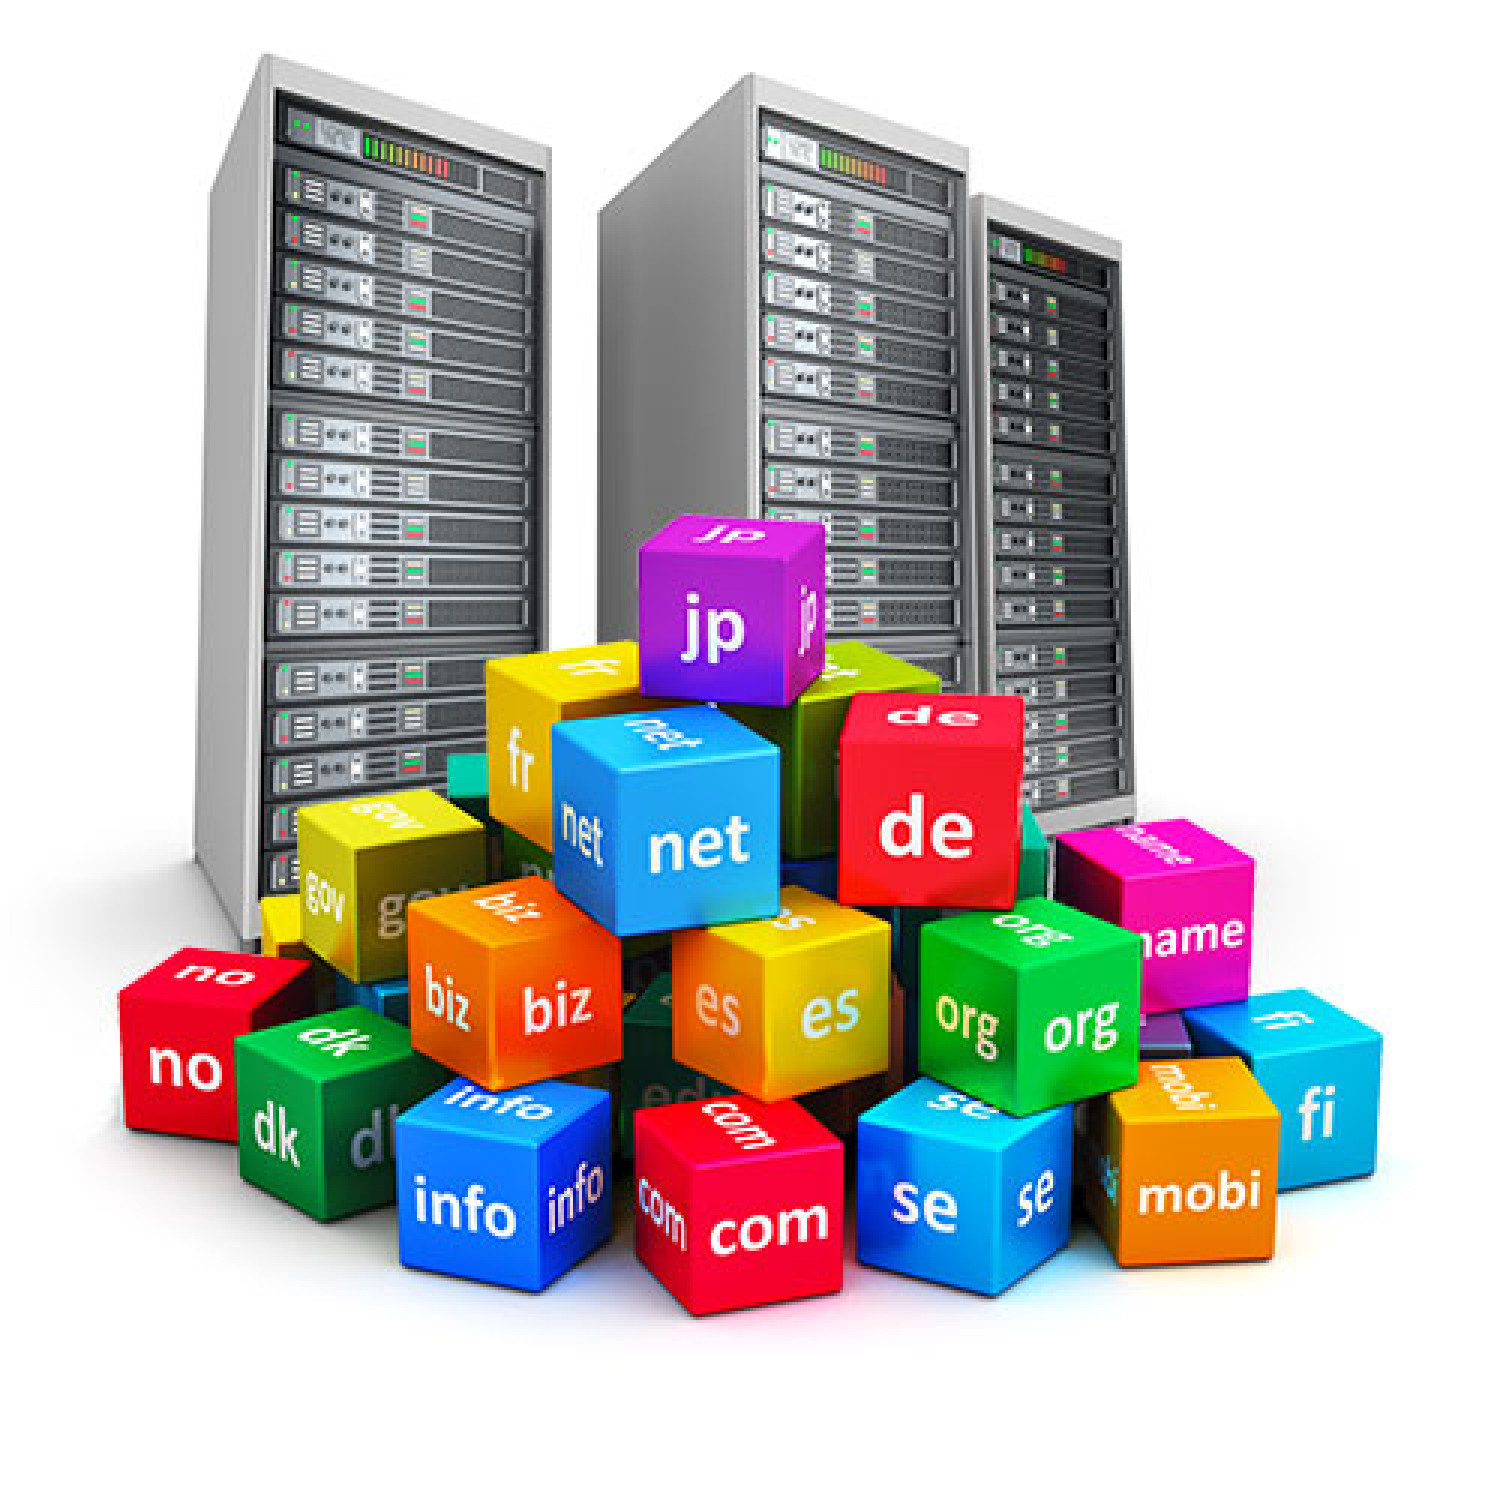 Affordable Domain Name Registration Services Infographic